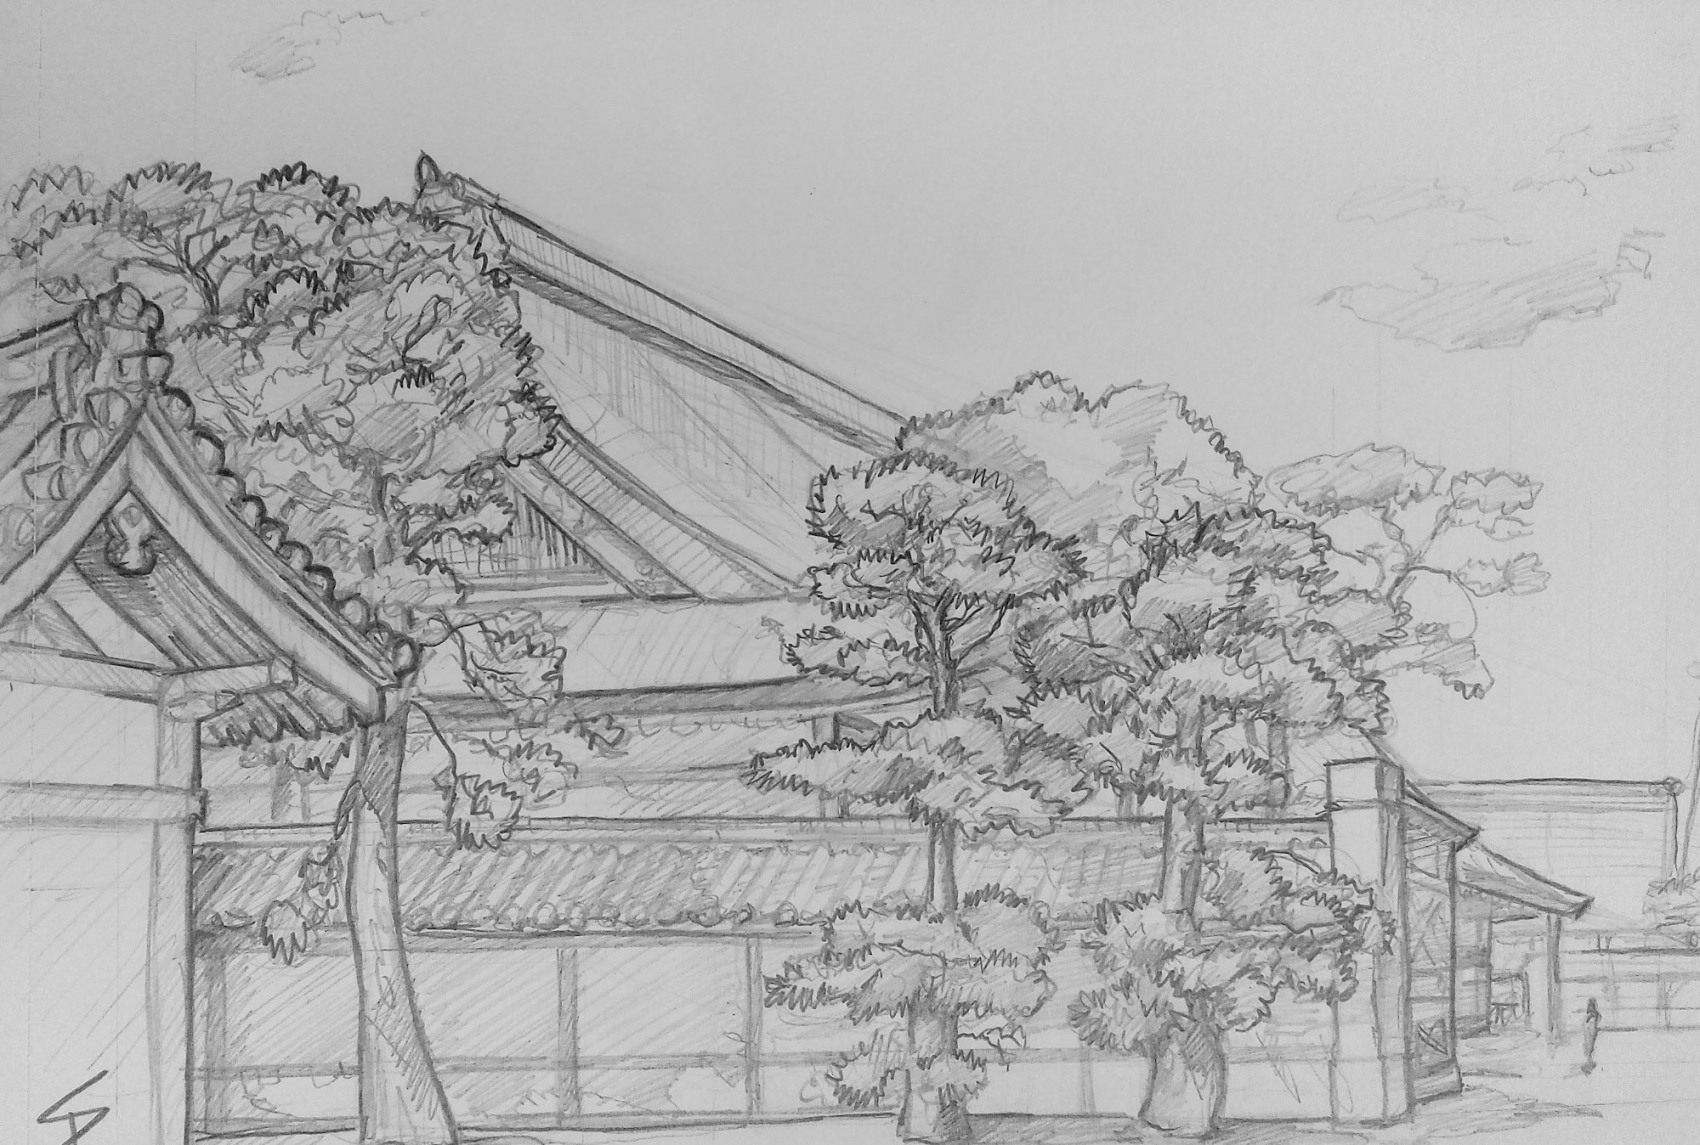 Urban art - Kamigyo Ward, Kyoto, Japan.'Kyoto Imperial Palace.' Sketched from a public seating area, set up to give shade to visitors. The Palace is surrounded by a large public park, blooming with cherry blossom, and perfect for a spot of Hanami. sketchbookexplorer.com @davidasutton @sketchbookexplorer Facebook.com/davidanthonysutton #japan #kyoto #kamigyoward #kyotoimperialpalace #travel #travelblog #art #sketching #cheeryblossom #cherryblossomseason